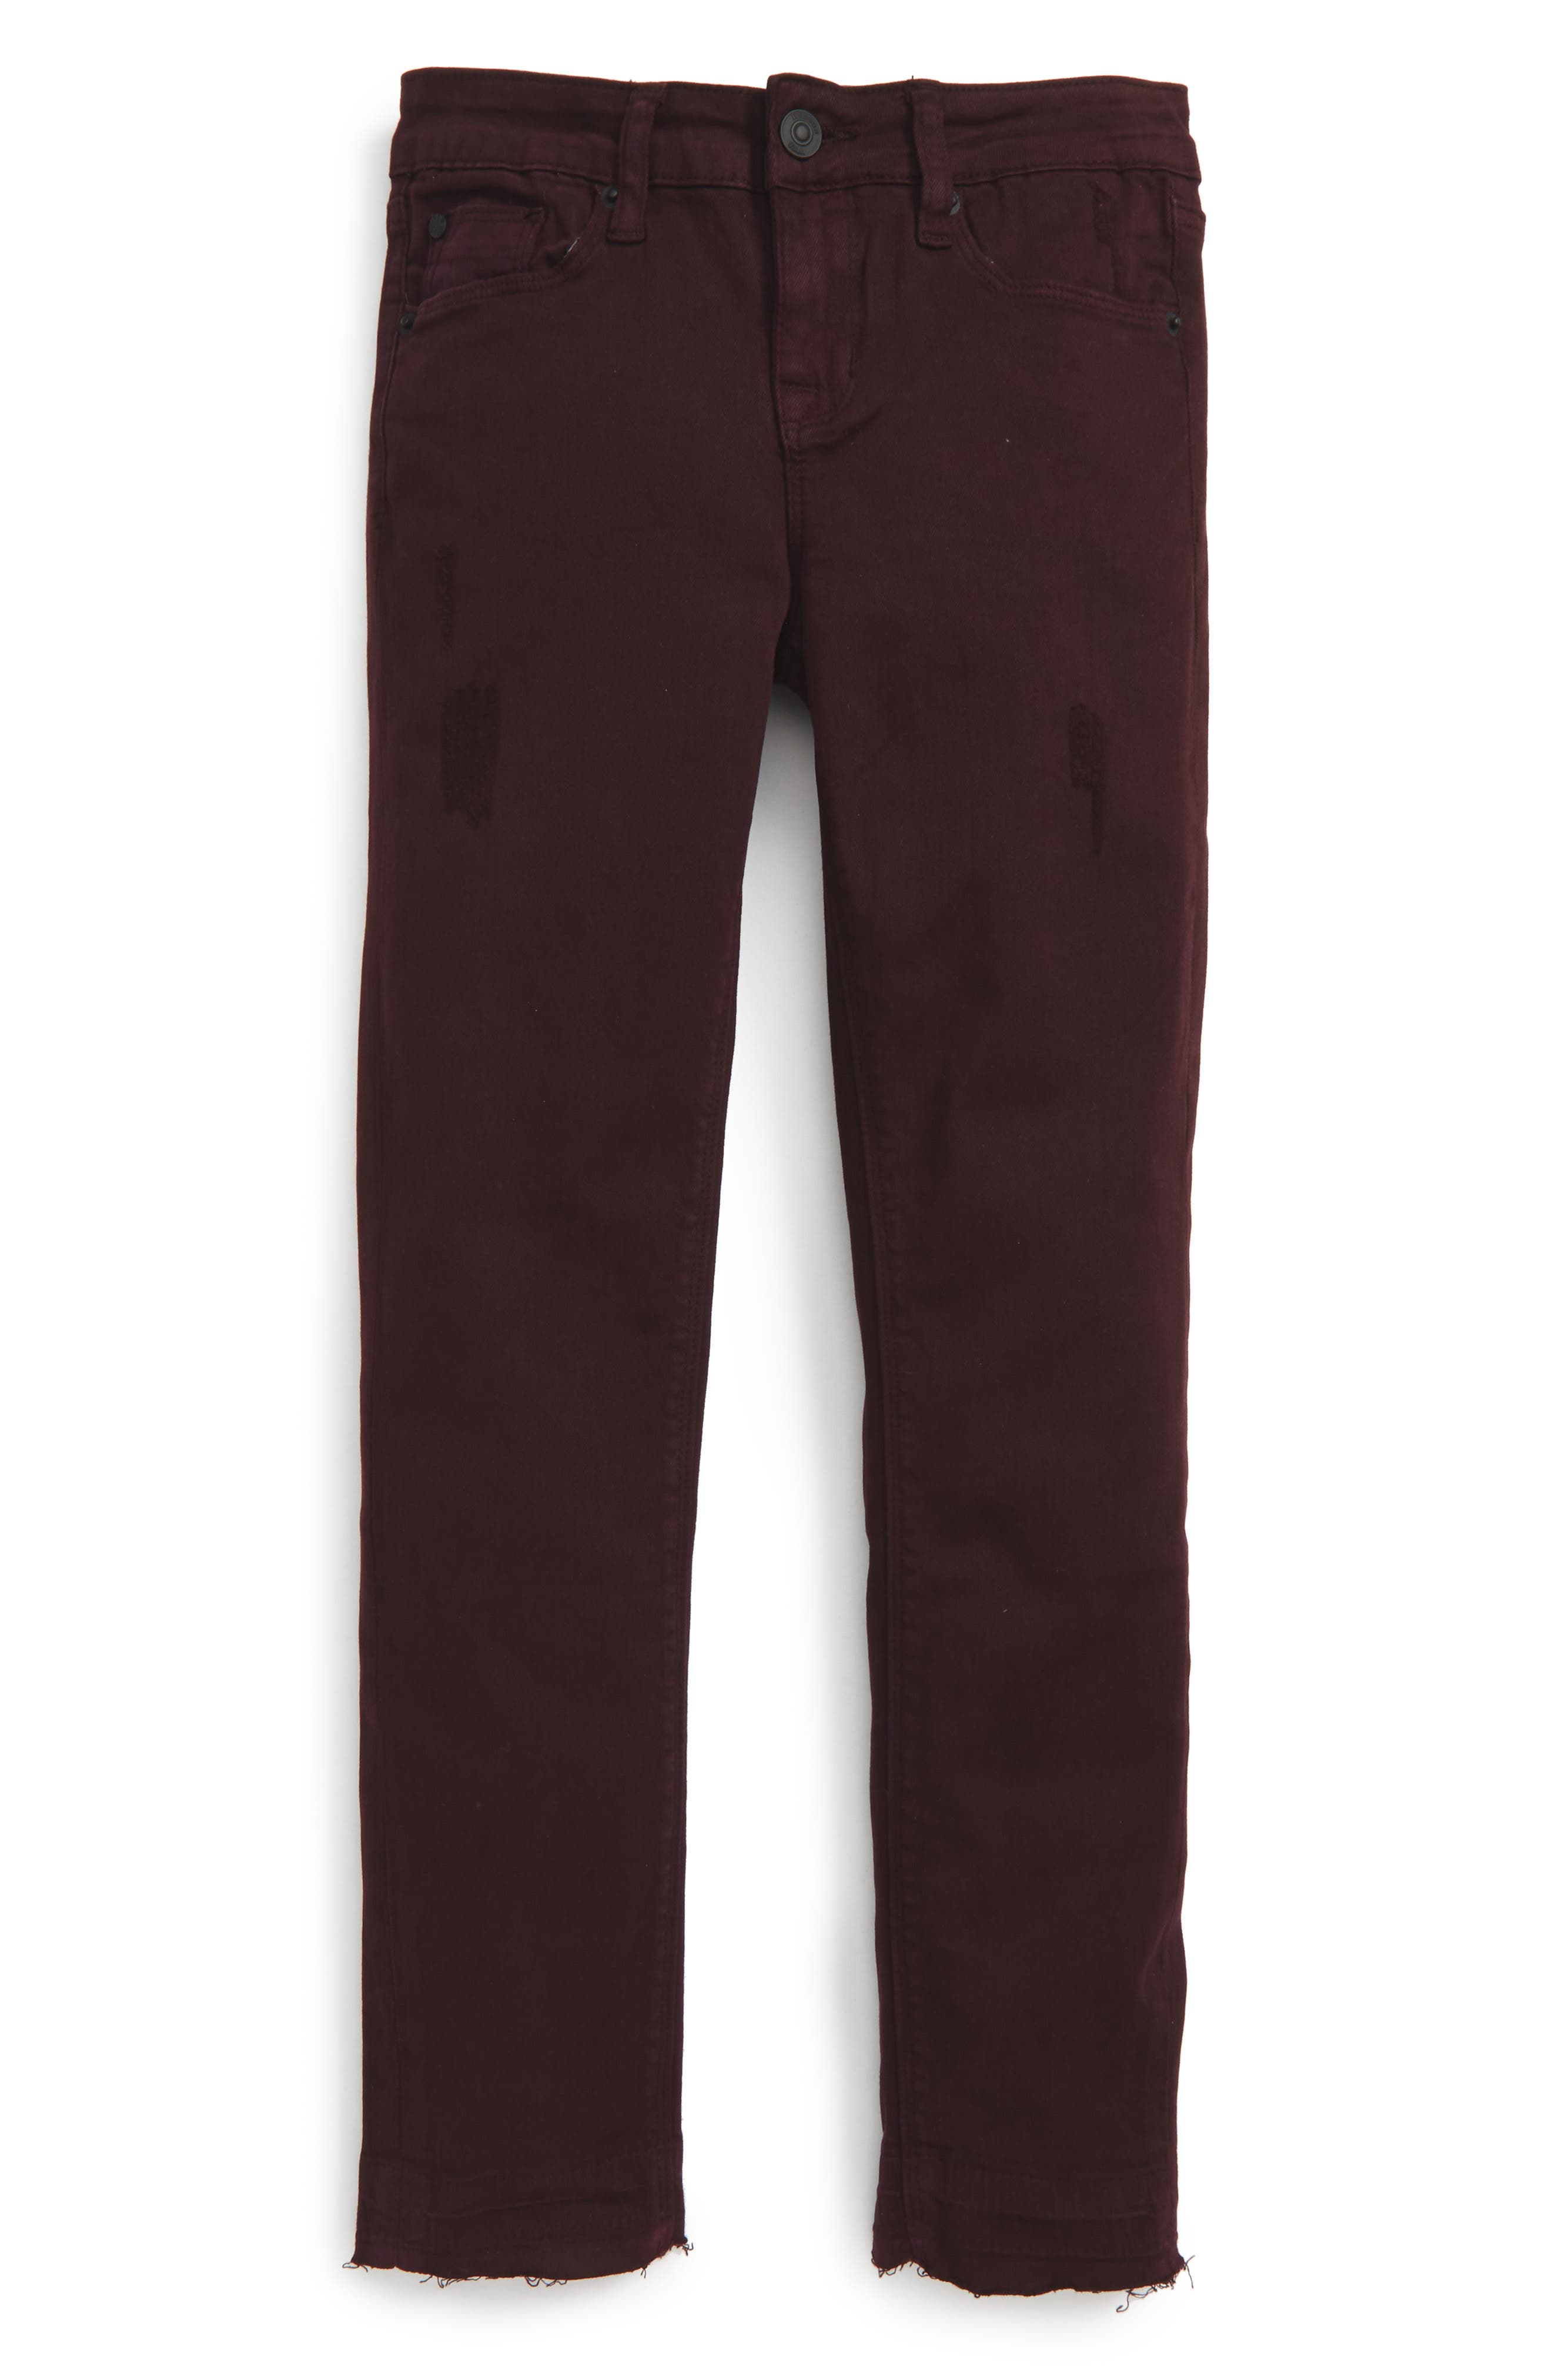 Hudson Jeans Released Hem Skinny Jeans (Big Girls)